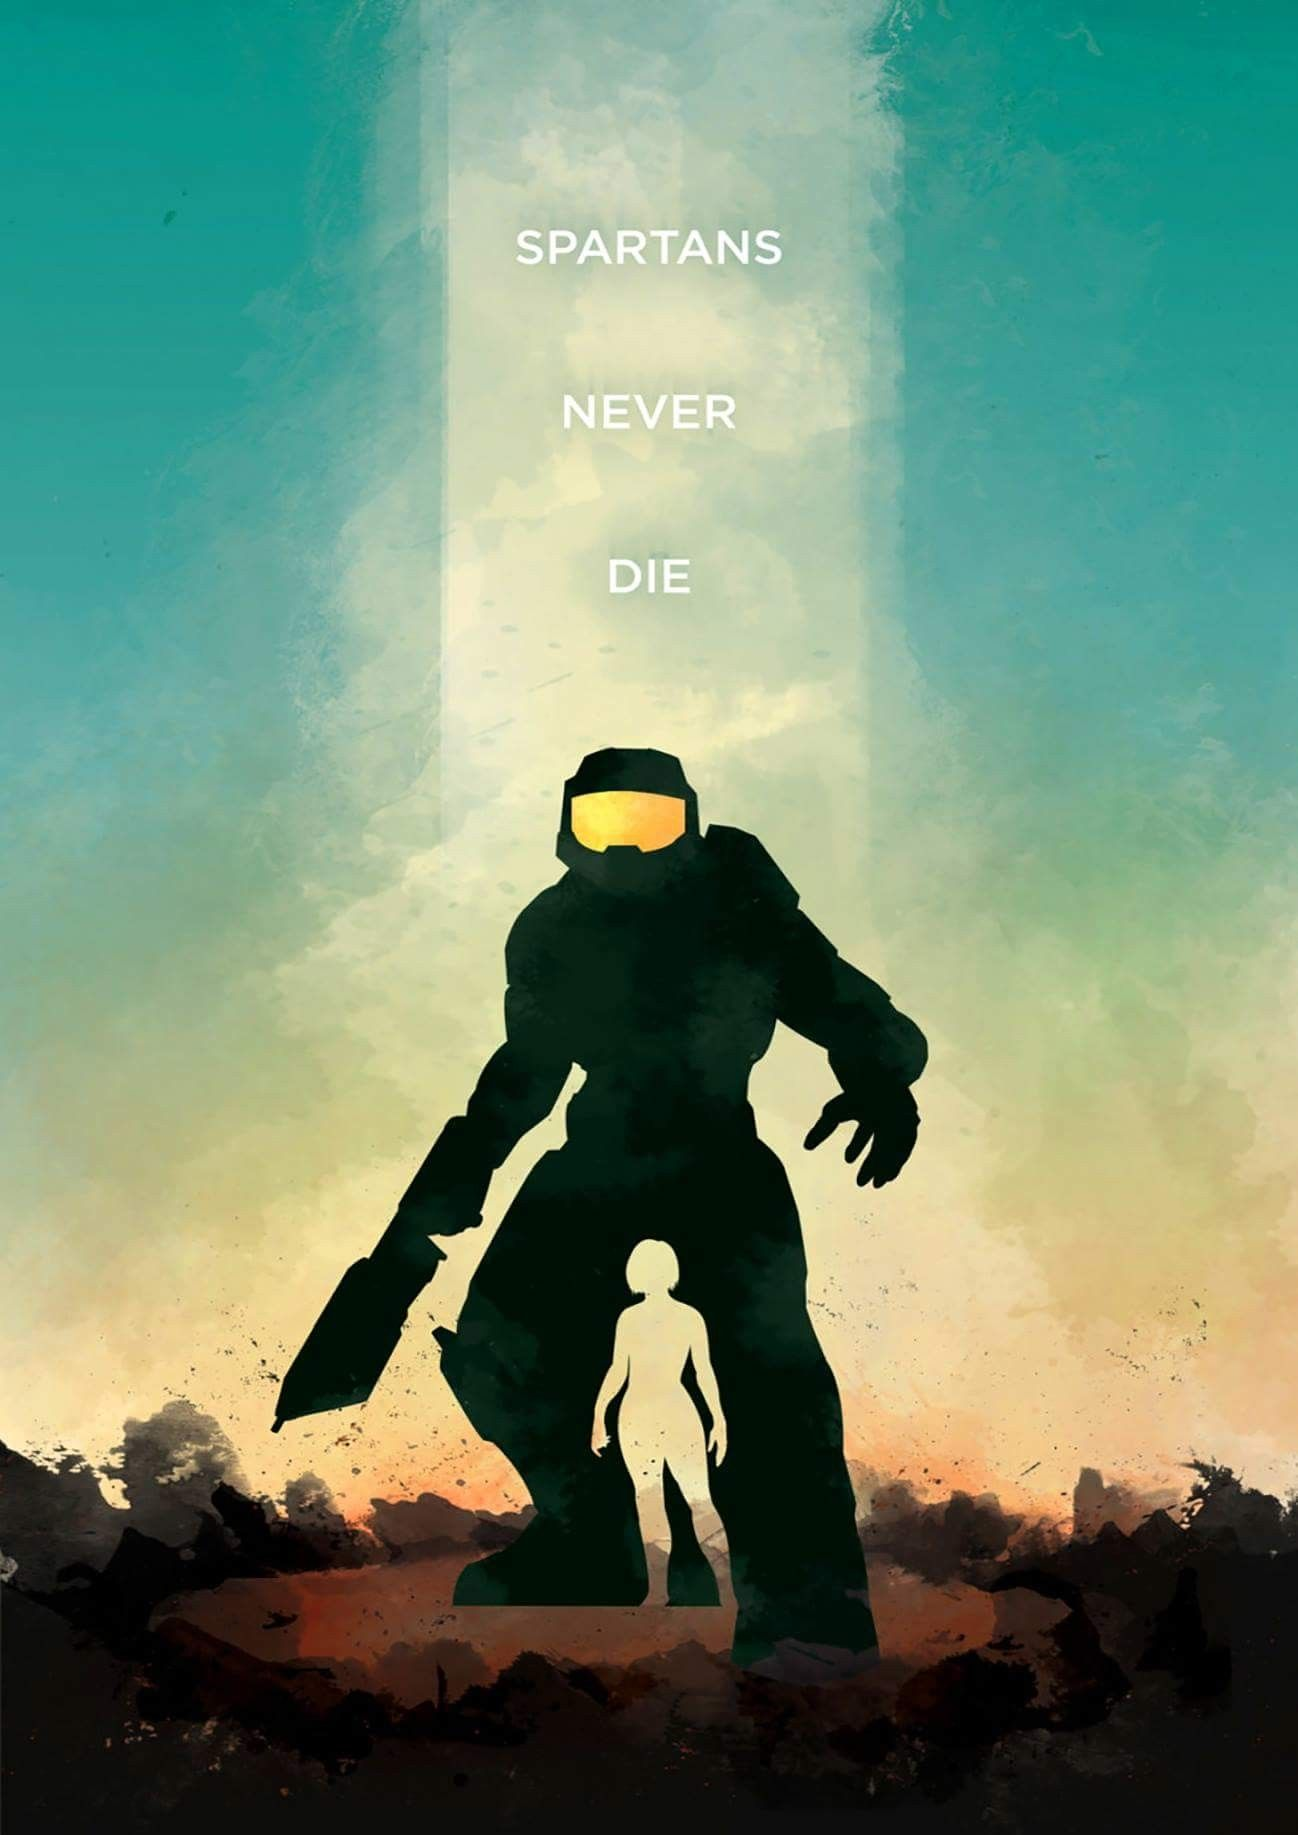 Pin by JasonJ on gaming | Halo game, Halo poster, Gaming posters